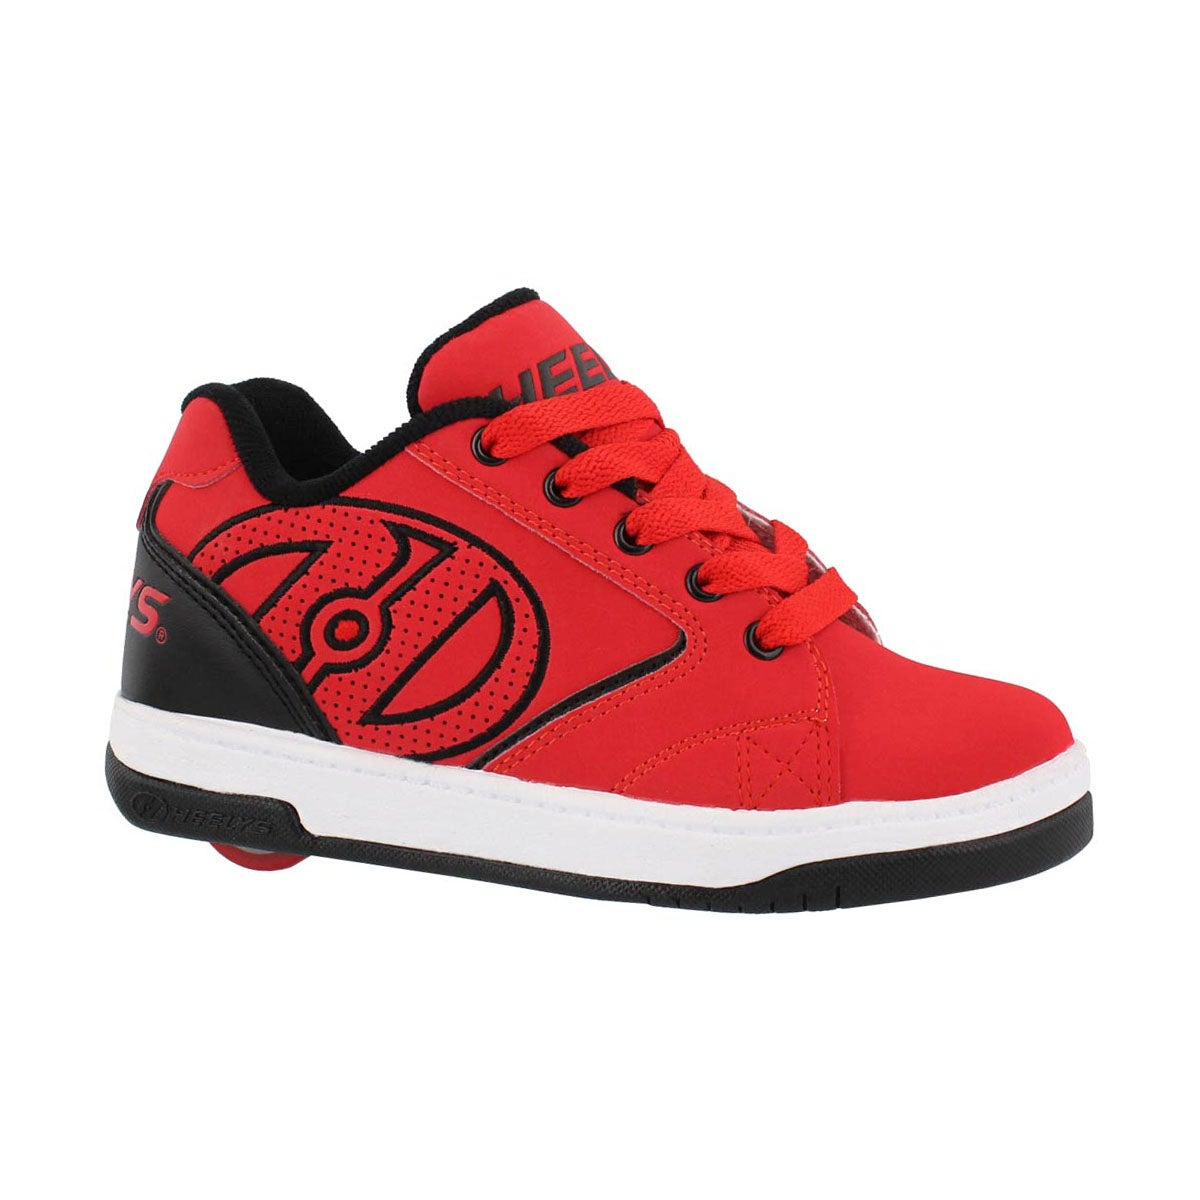 Boys' PROPEL 2.0 blk/red/wht skate sneakers